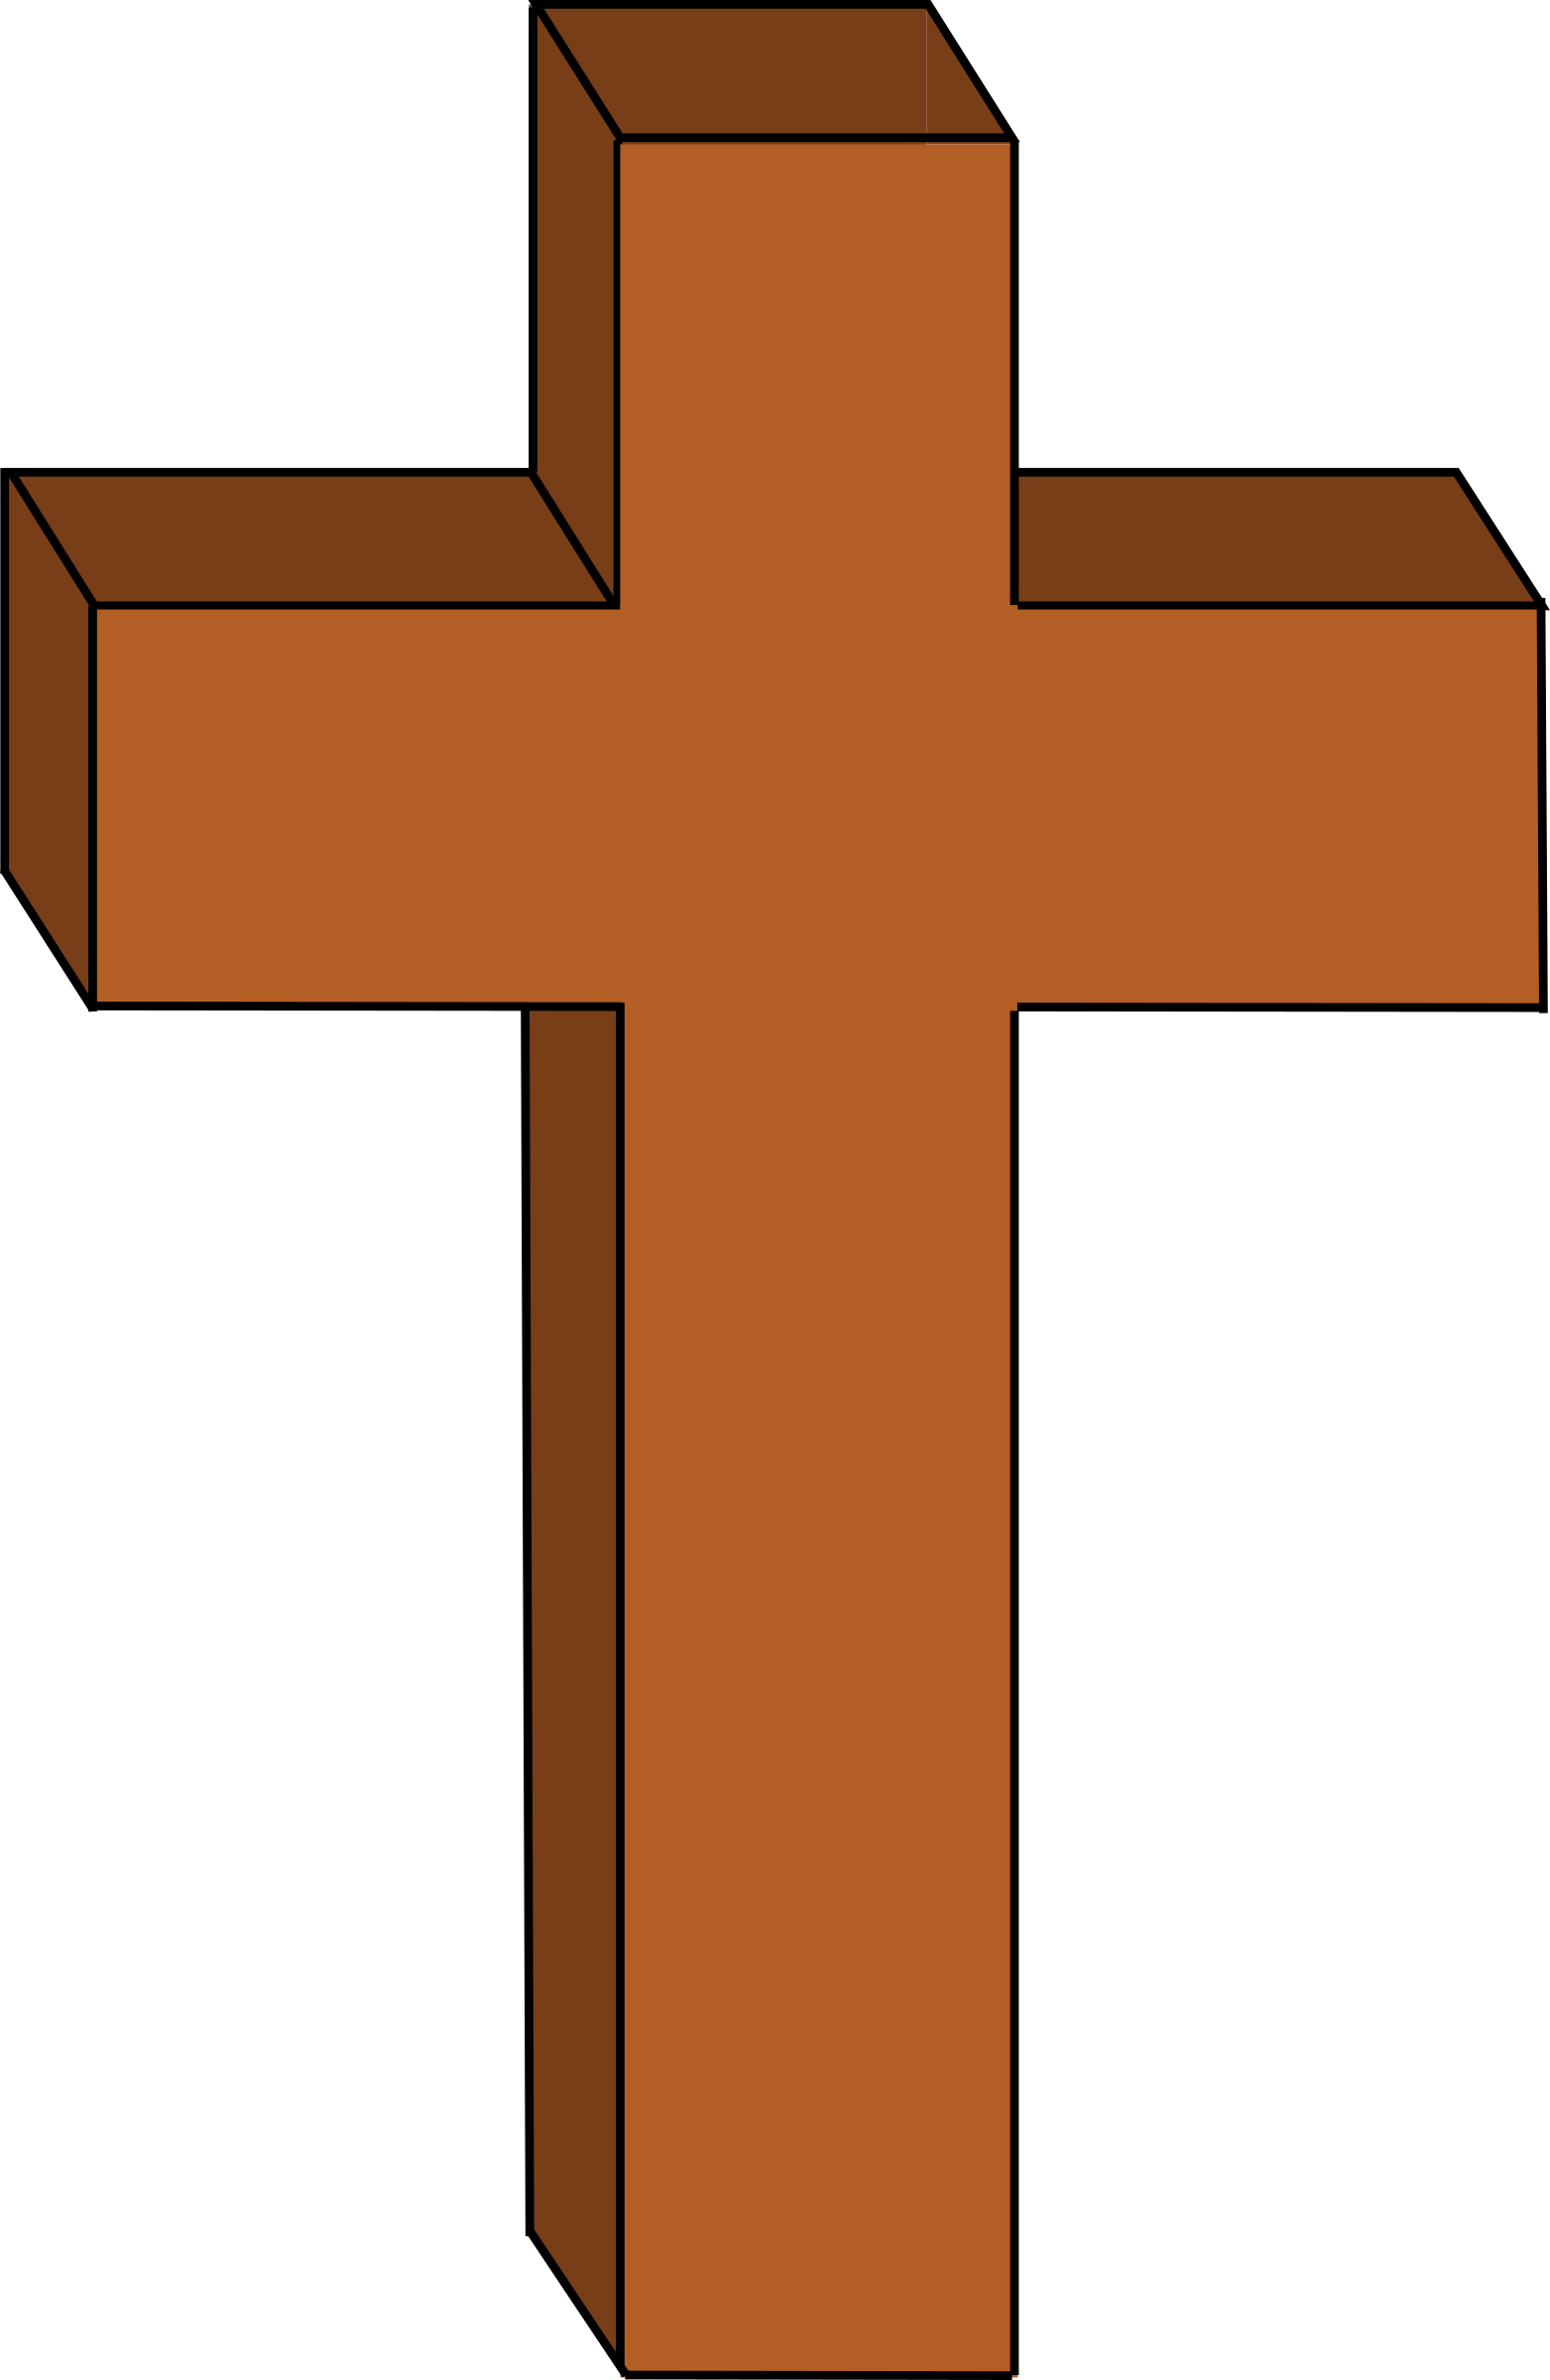 Cross jesus clipart svg library download 3d Cross - Encode clipart to Base64 svg library download